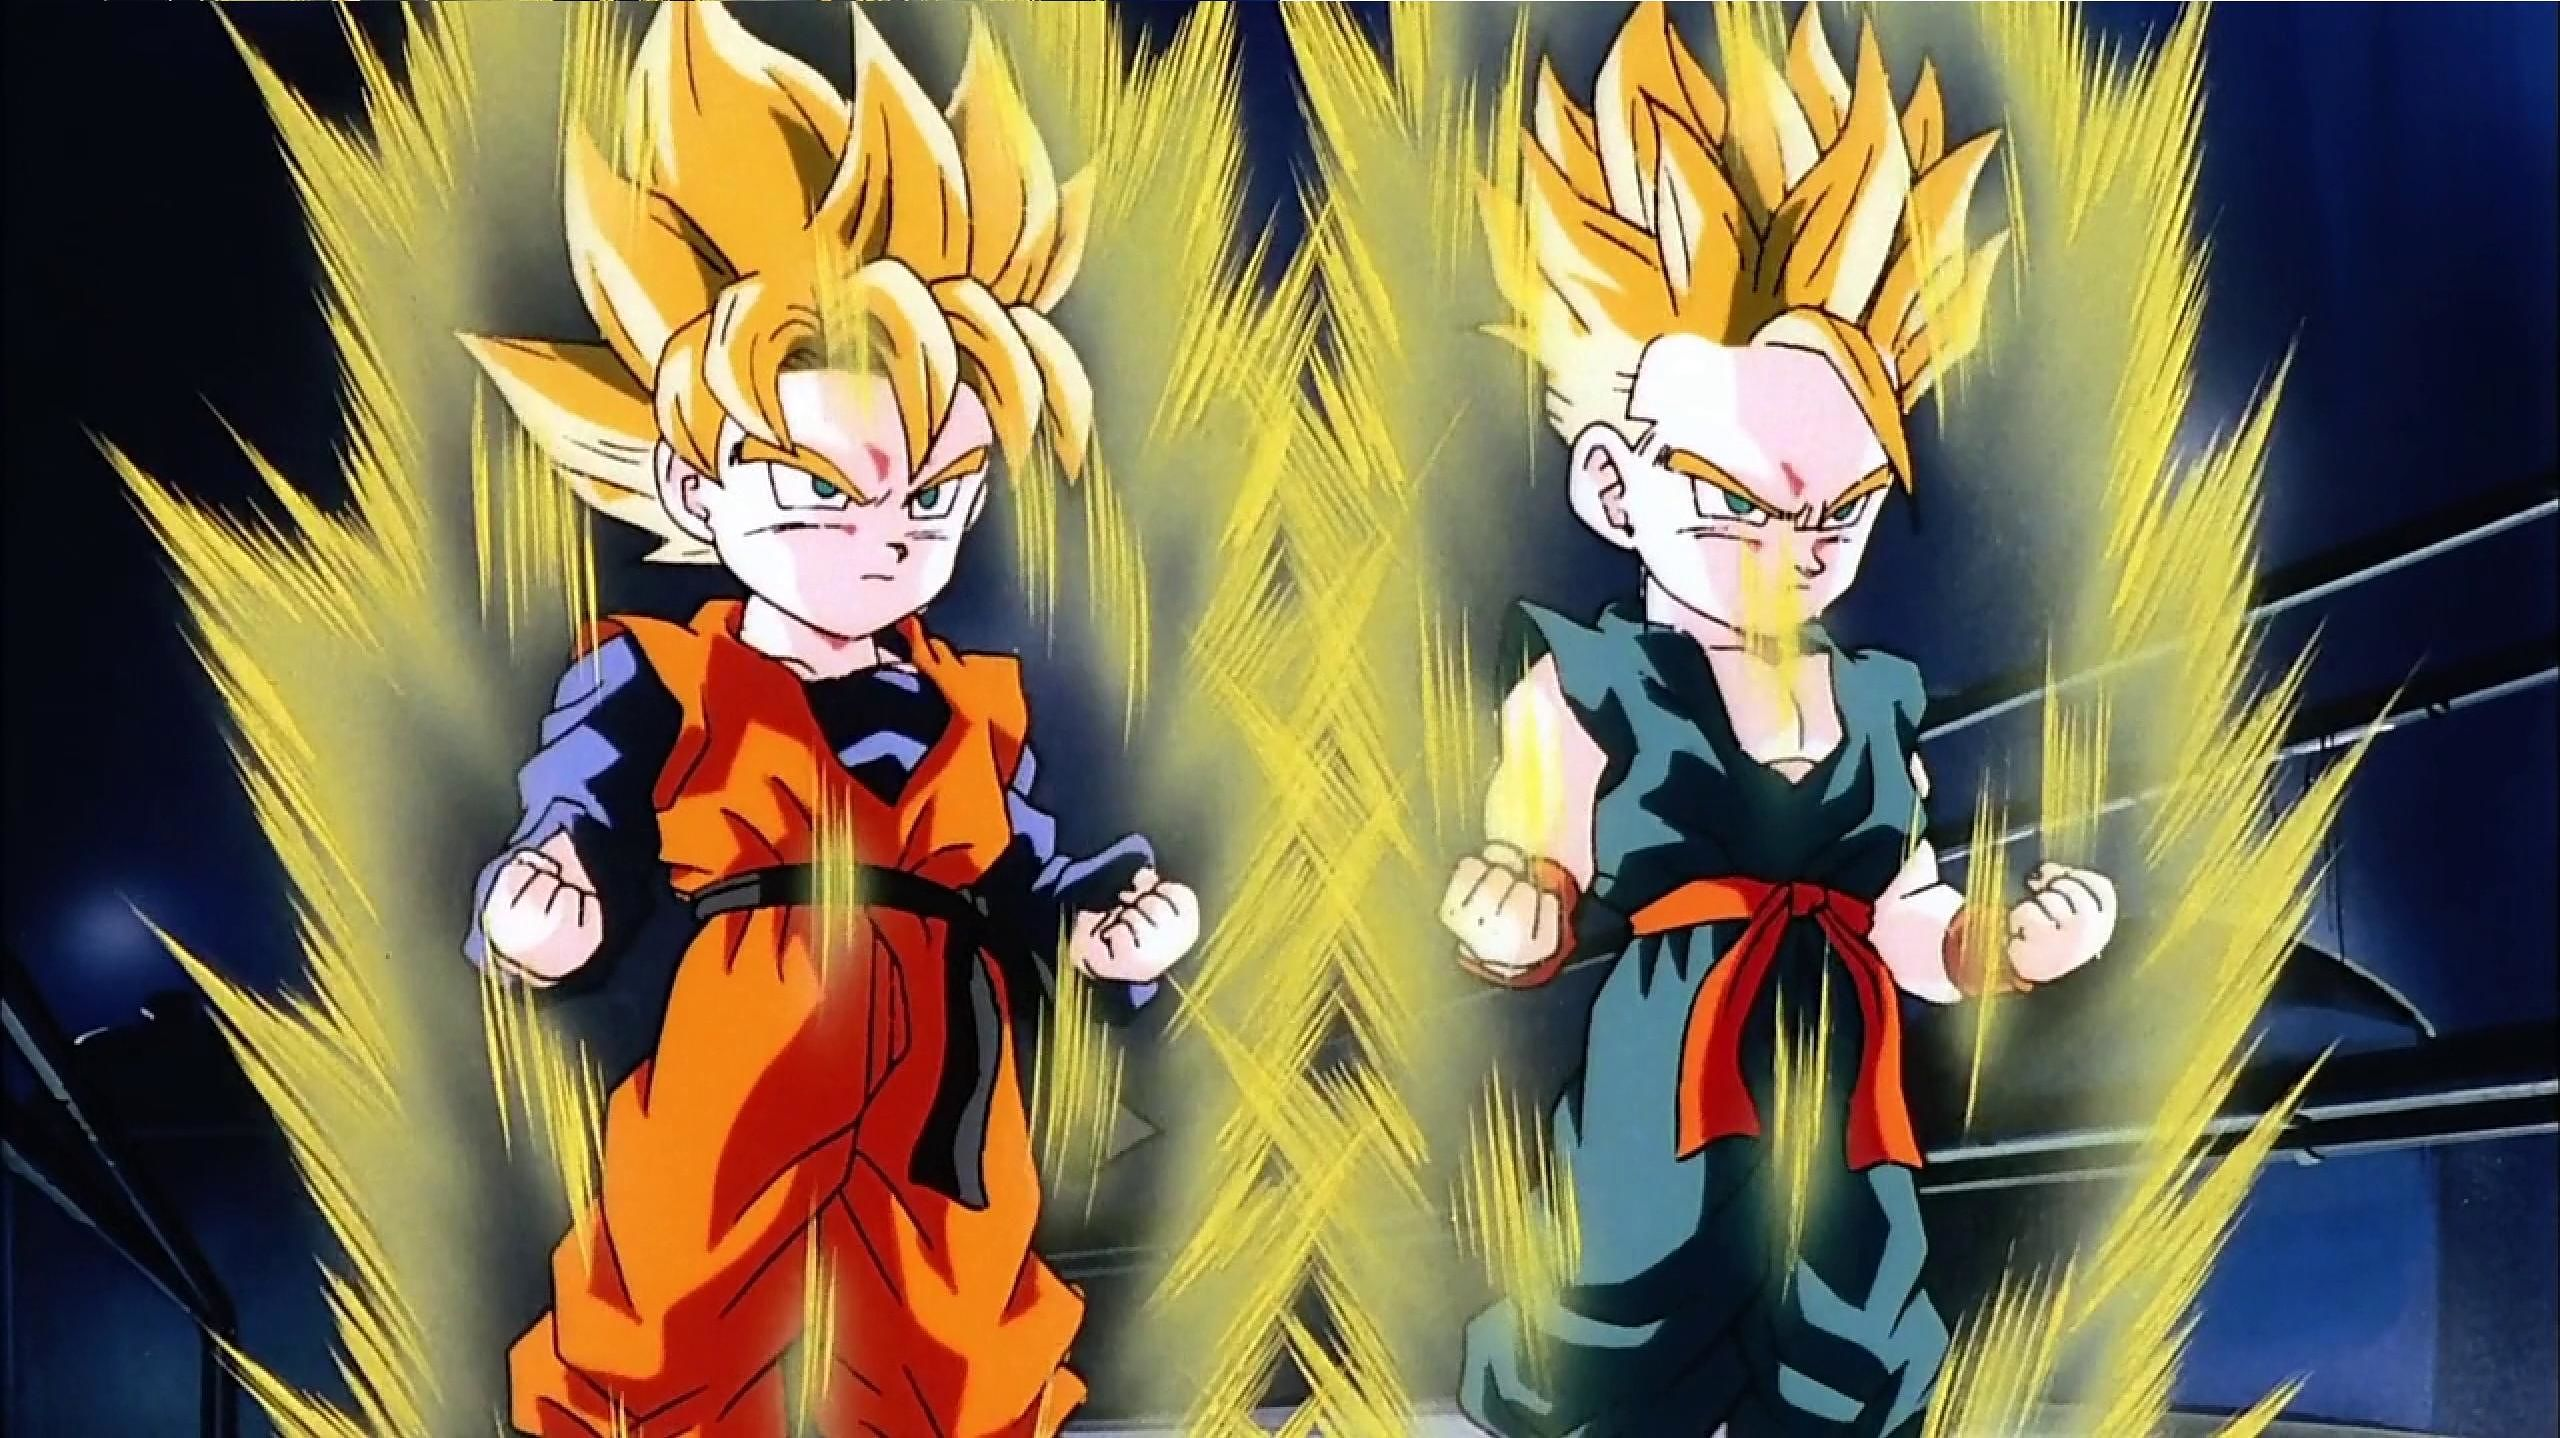 Trunks Dragon Ball Z Wallpapers 98 images in Collection Page 2 2560x1438